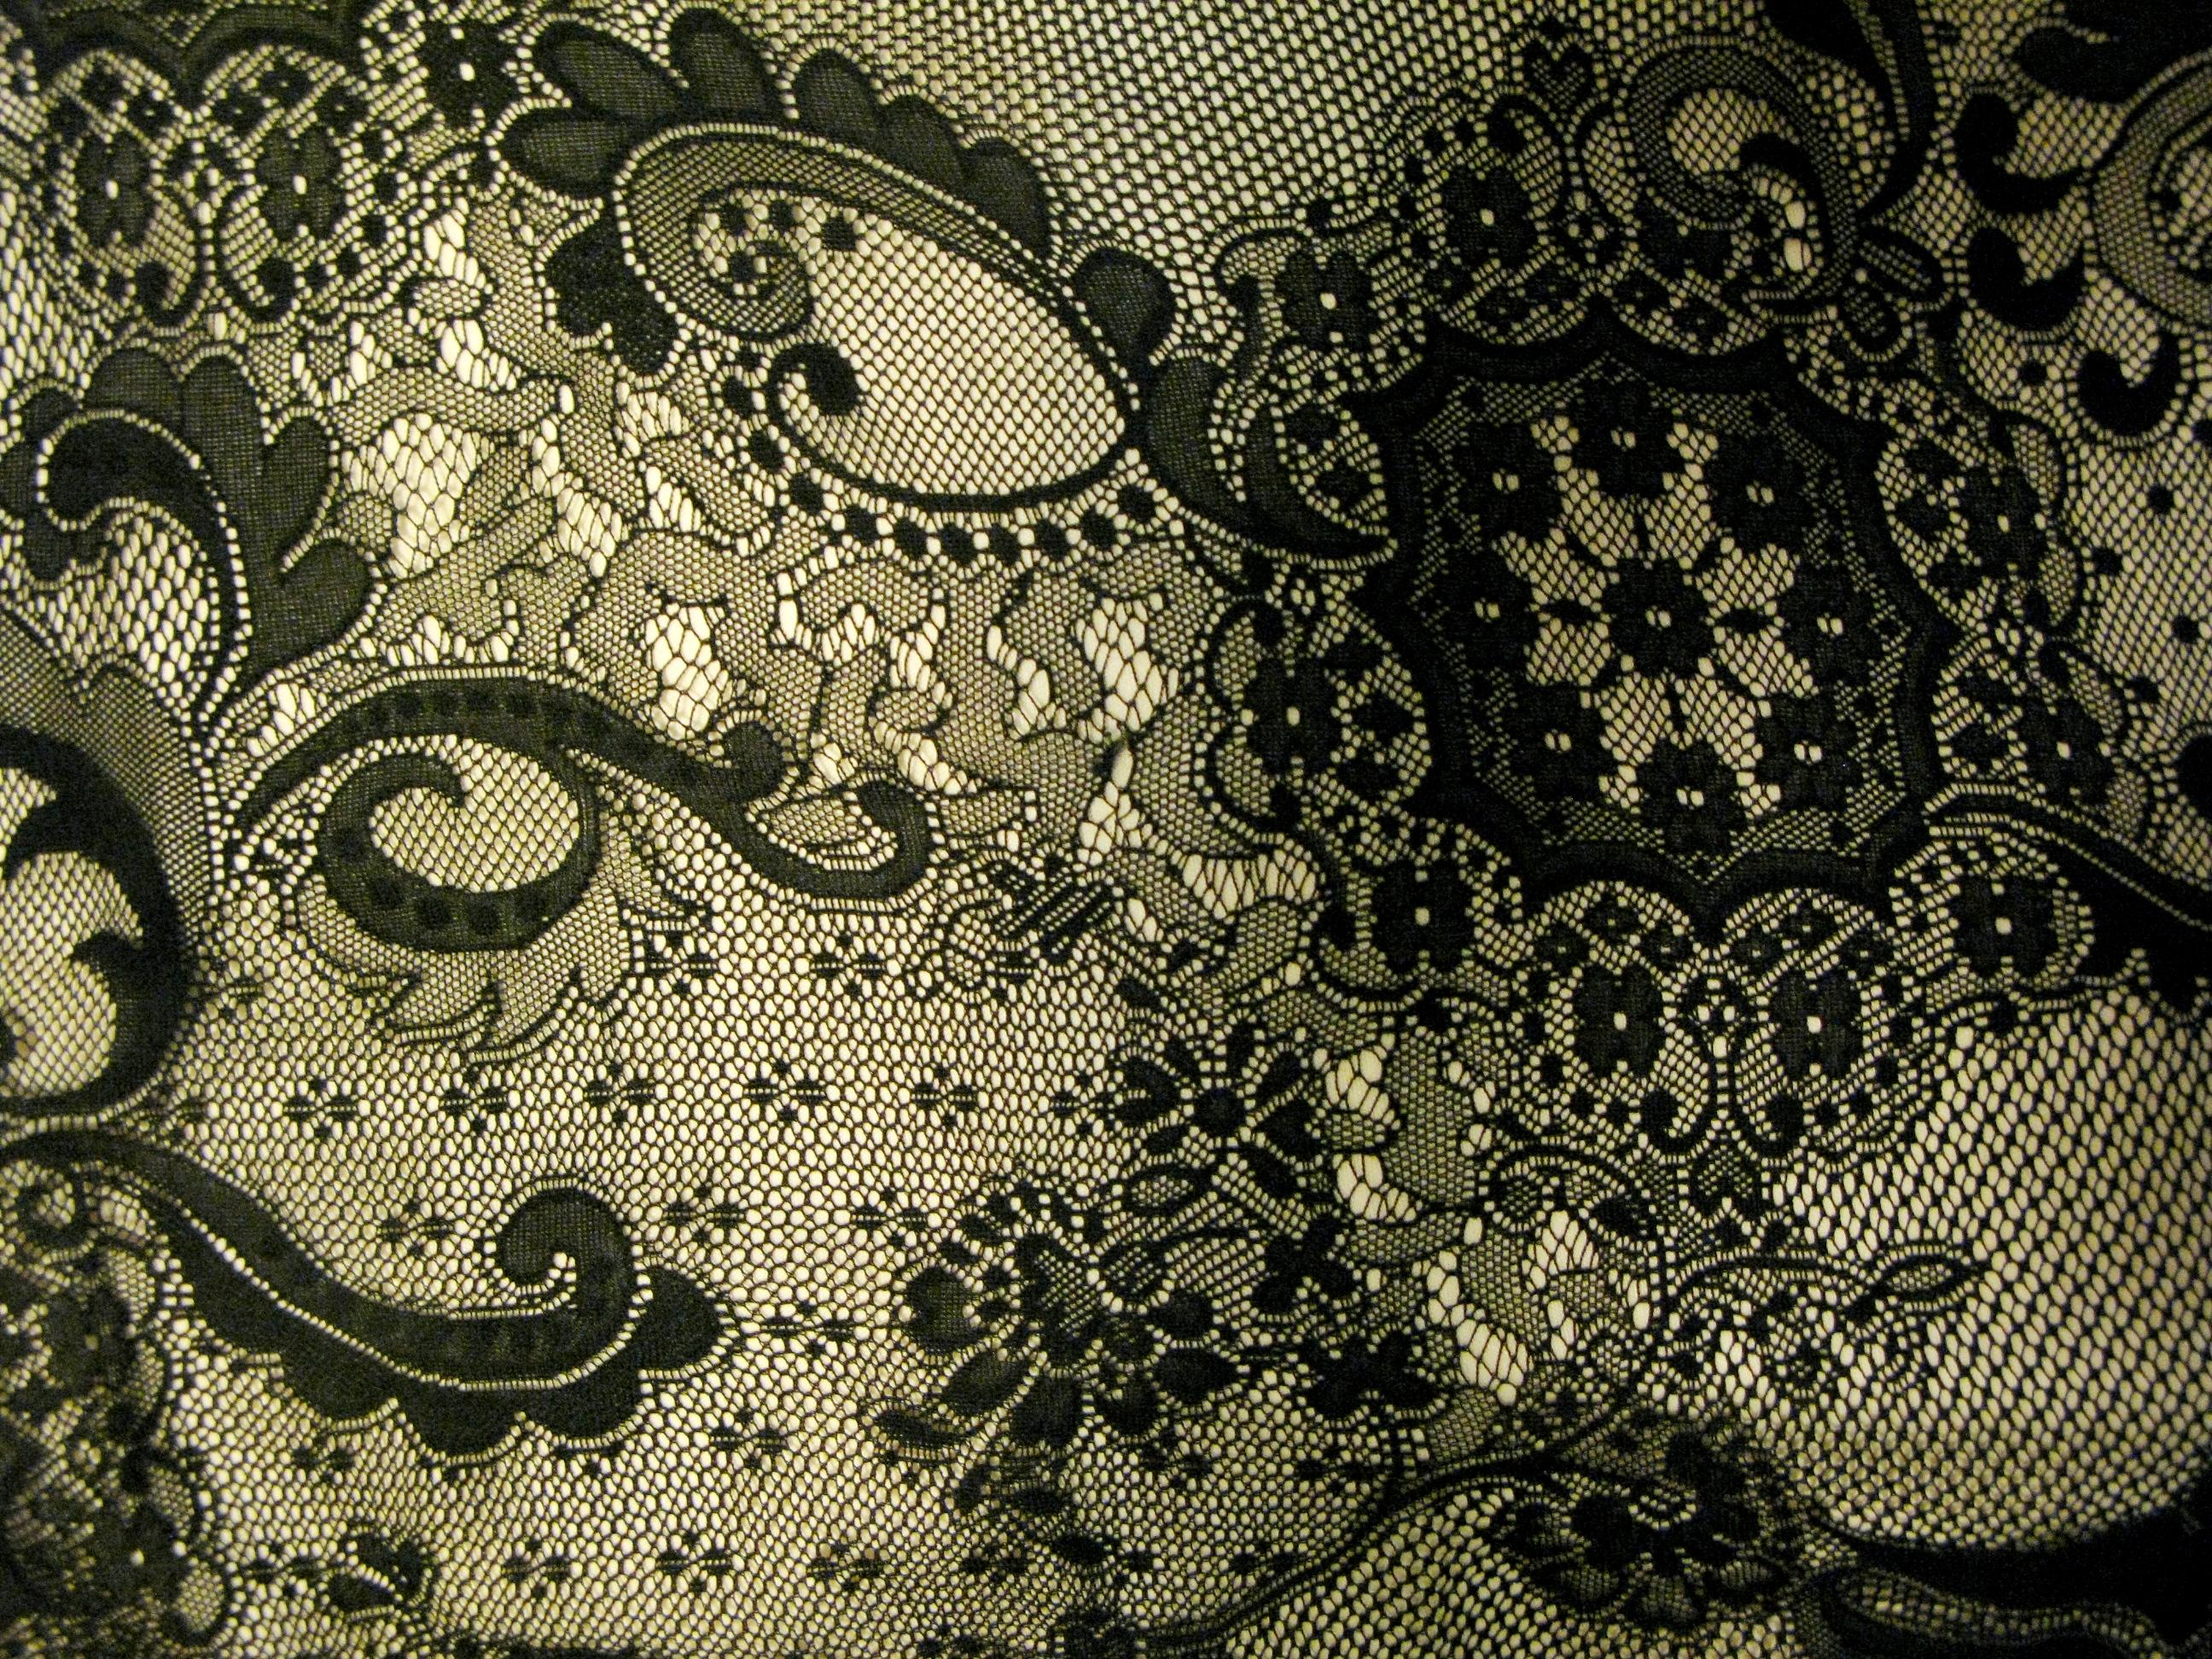 texture_black_lace_by_liz_stock-1.jpg (2592×1944)